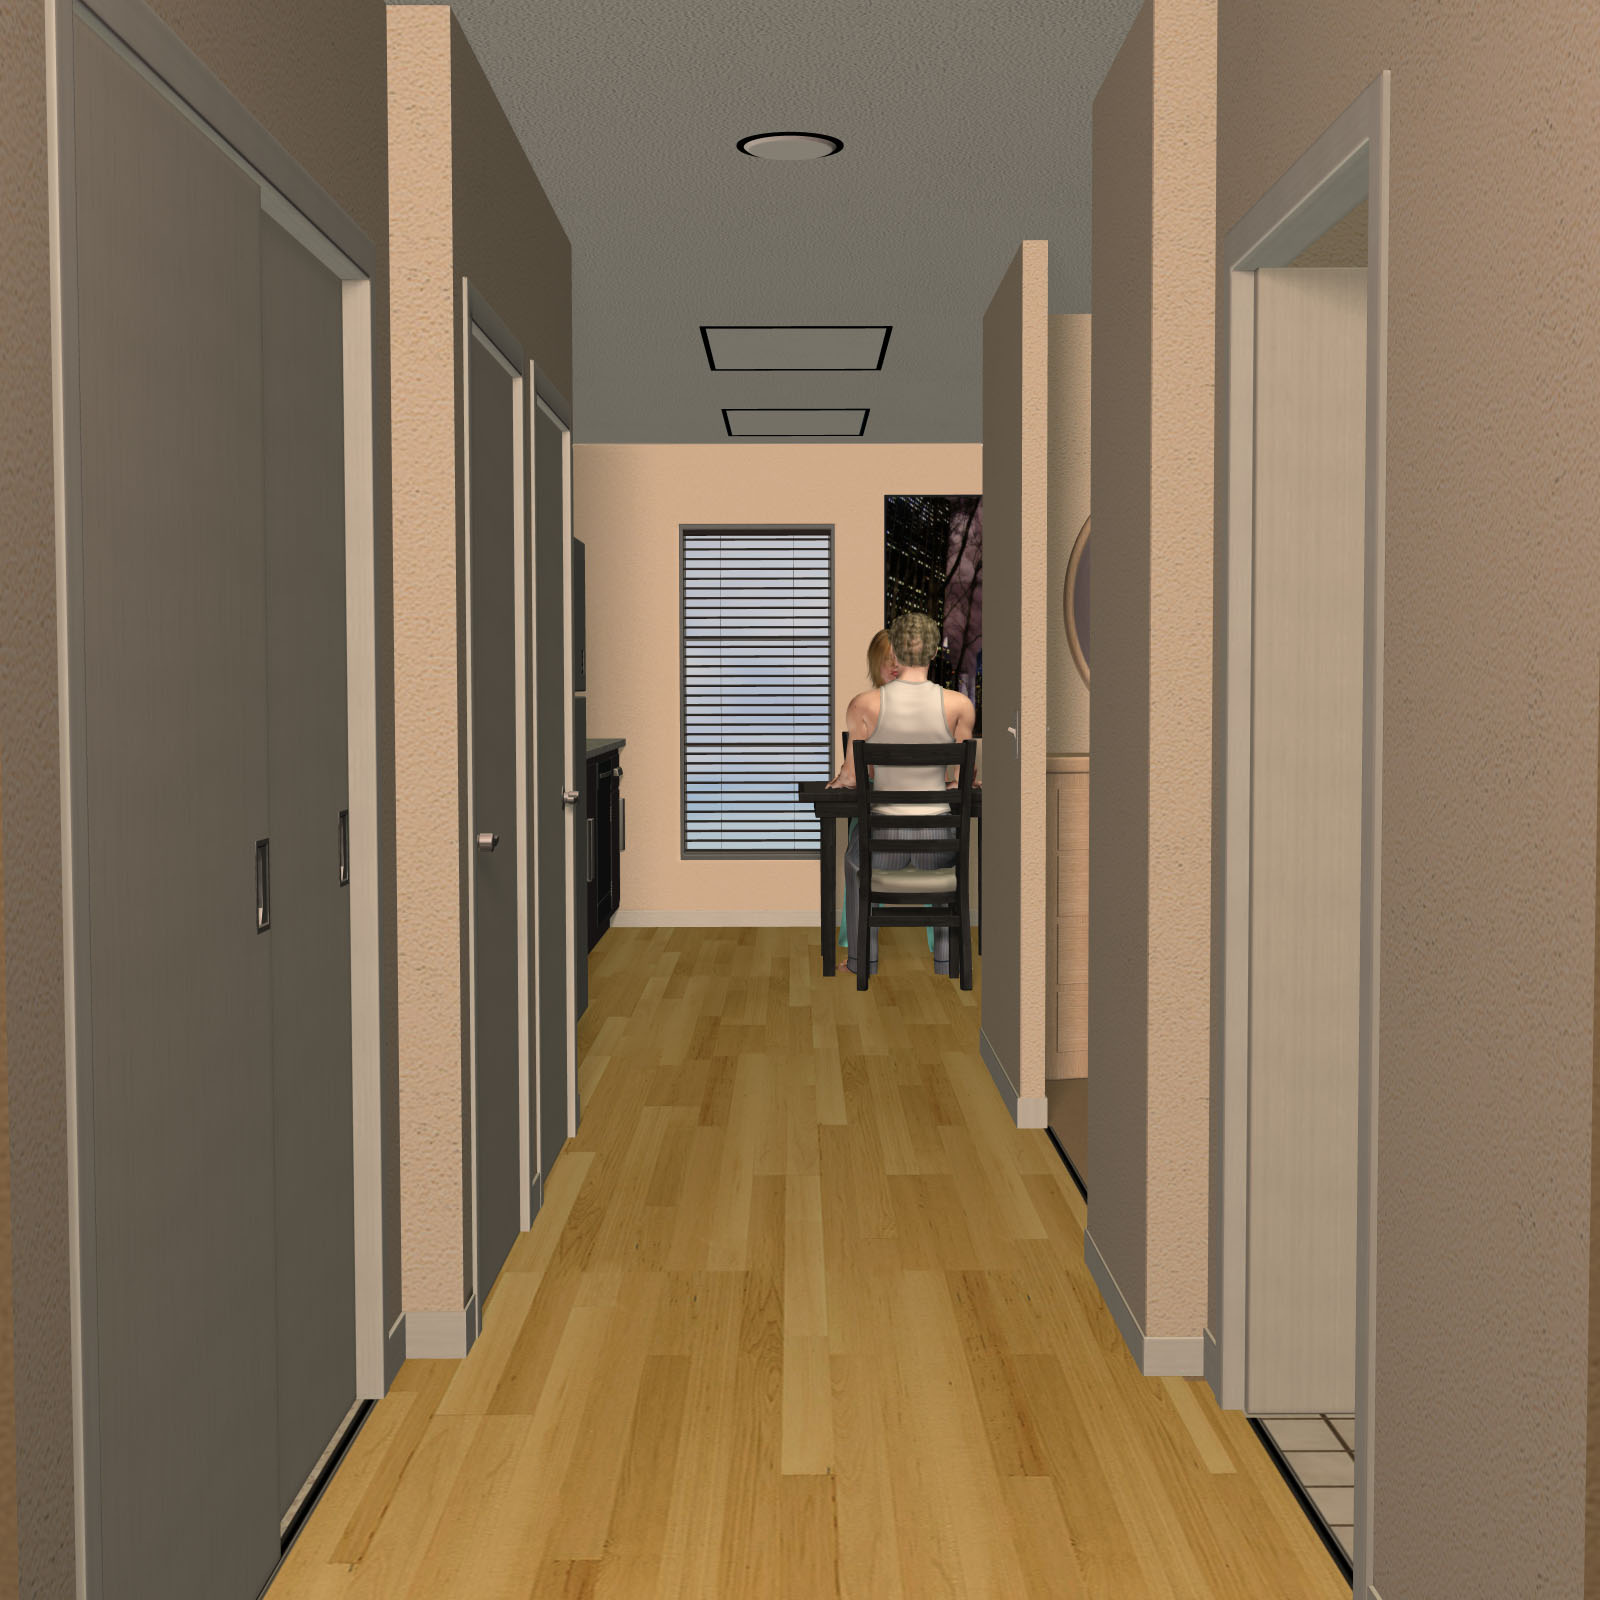 Studio apartment 3d models richabri for Apartment 3d model